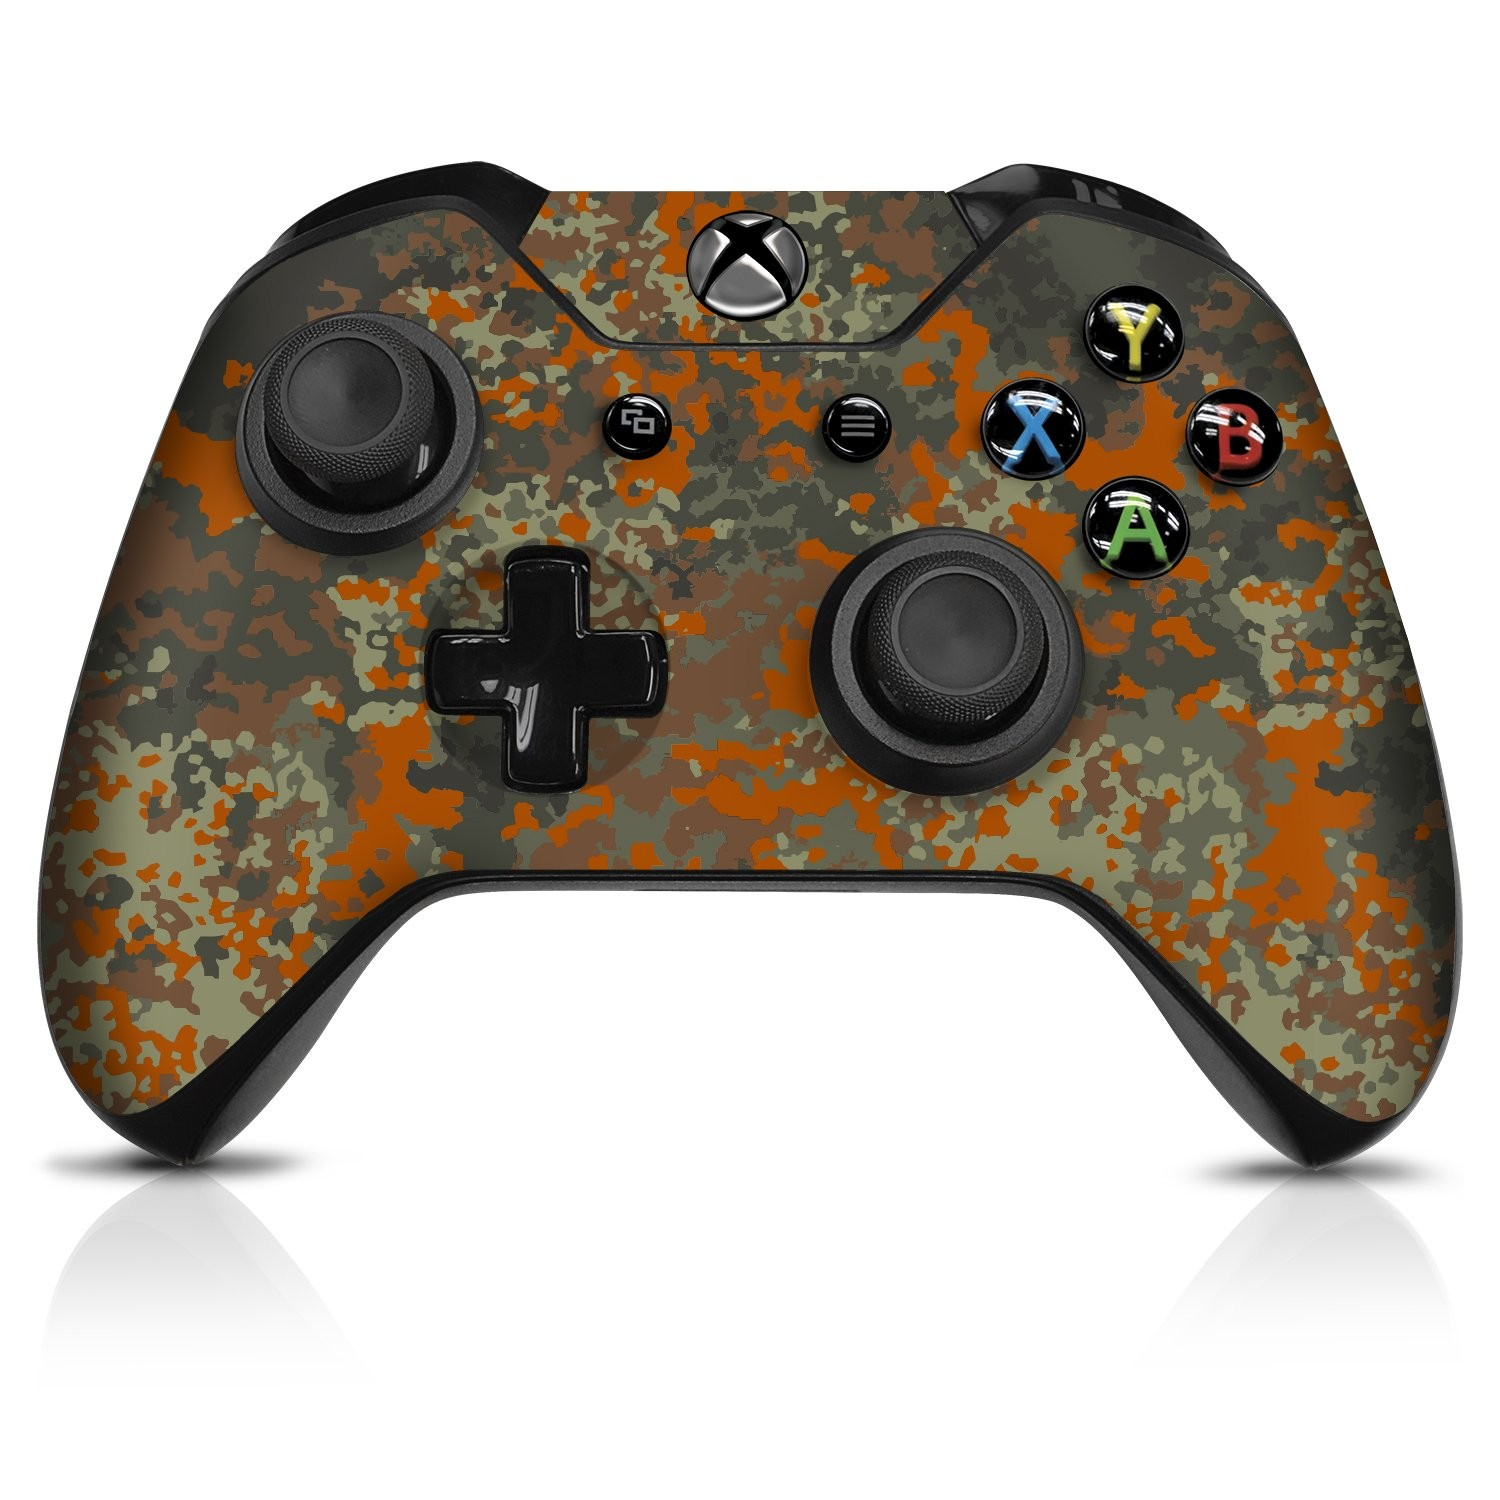 Flecktarn  Xbox One Controller Skin - Officially Licensed by Xbox - Controller Gear